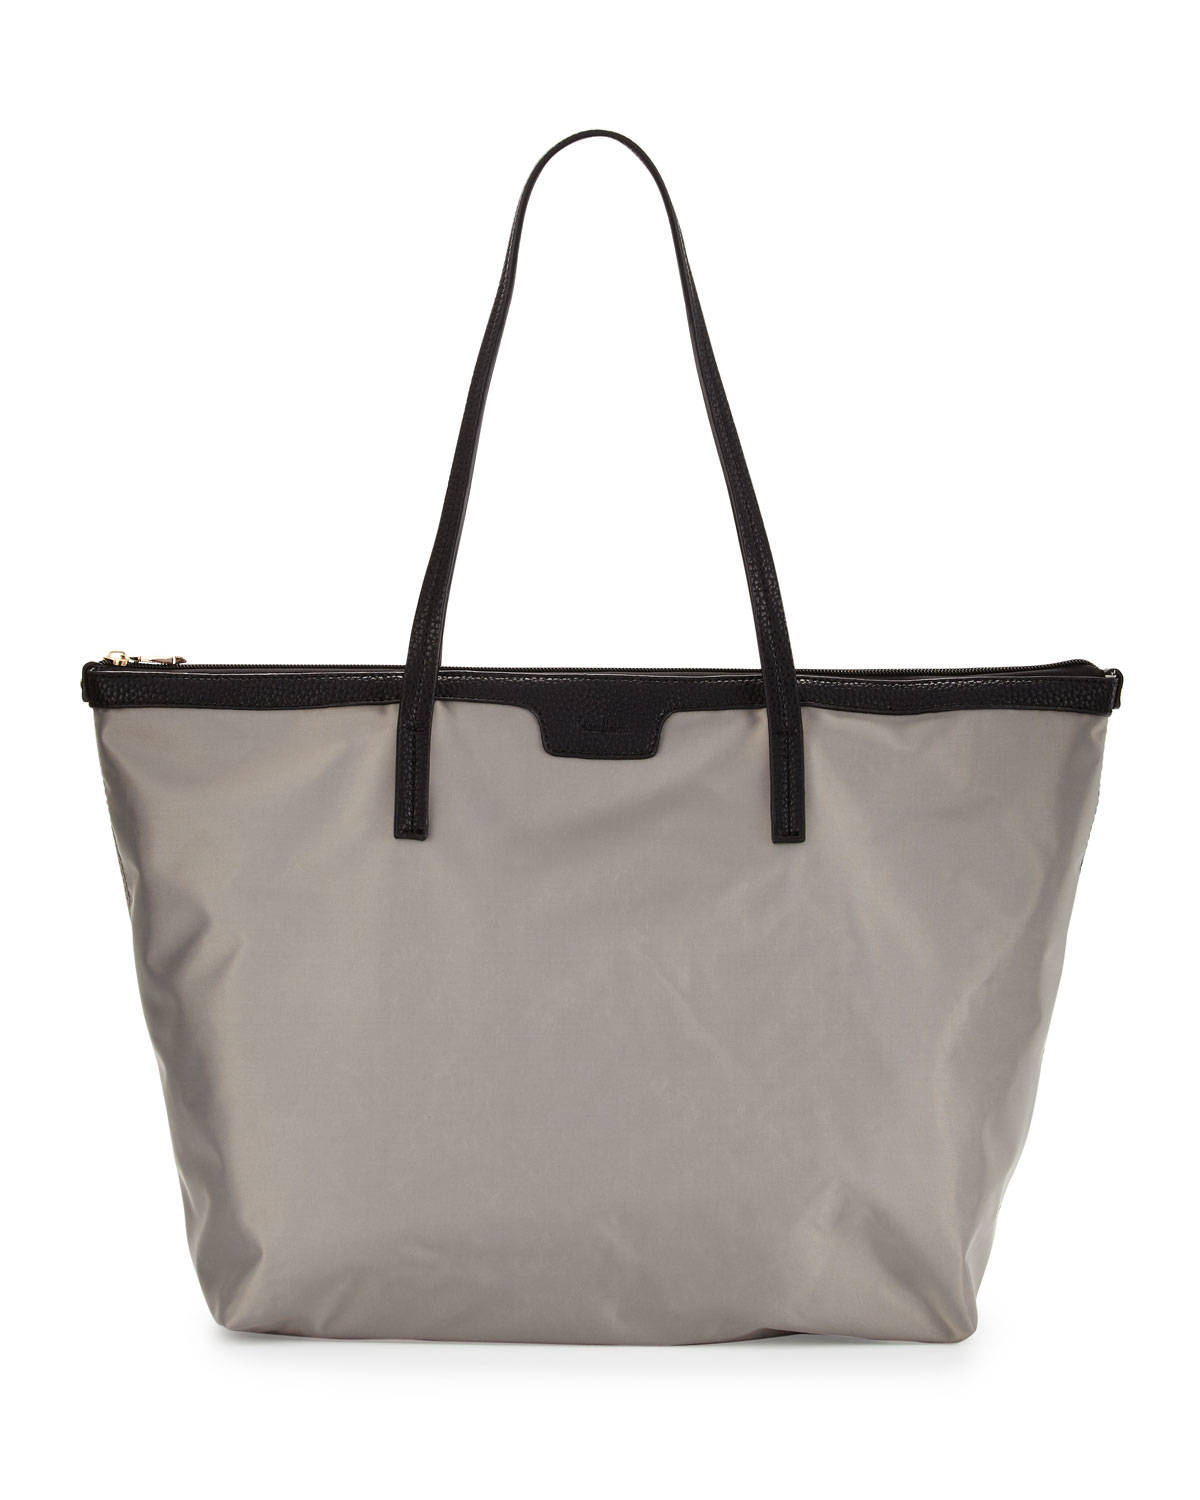 Neiman marcus Miley Nylon Zip-top Tote Bag in Gray | Lyst